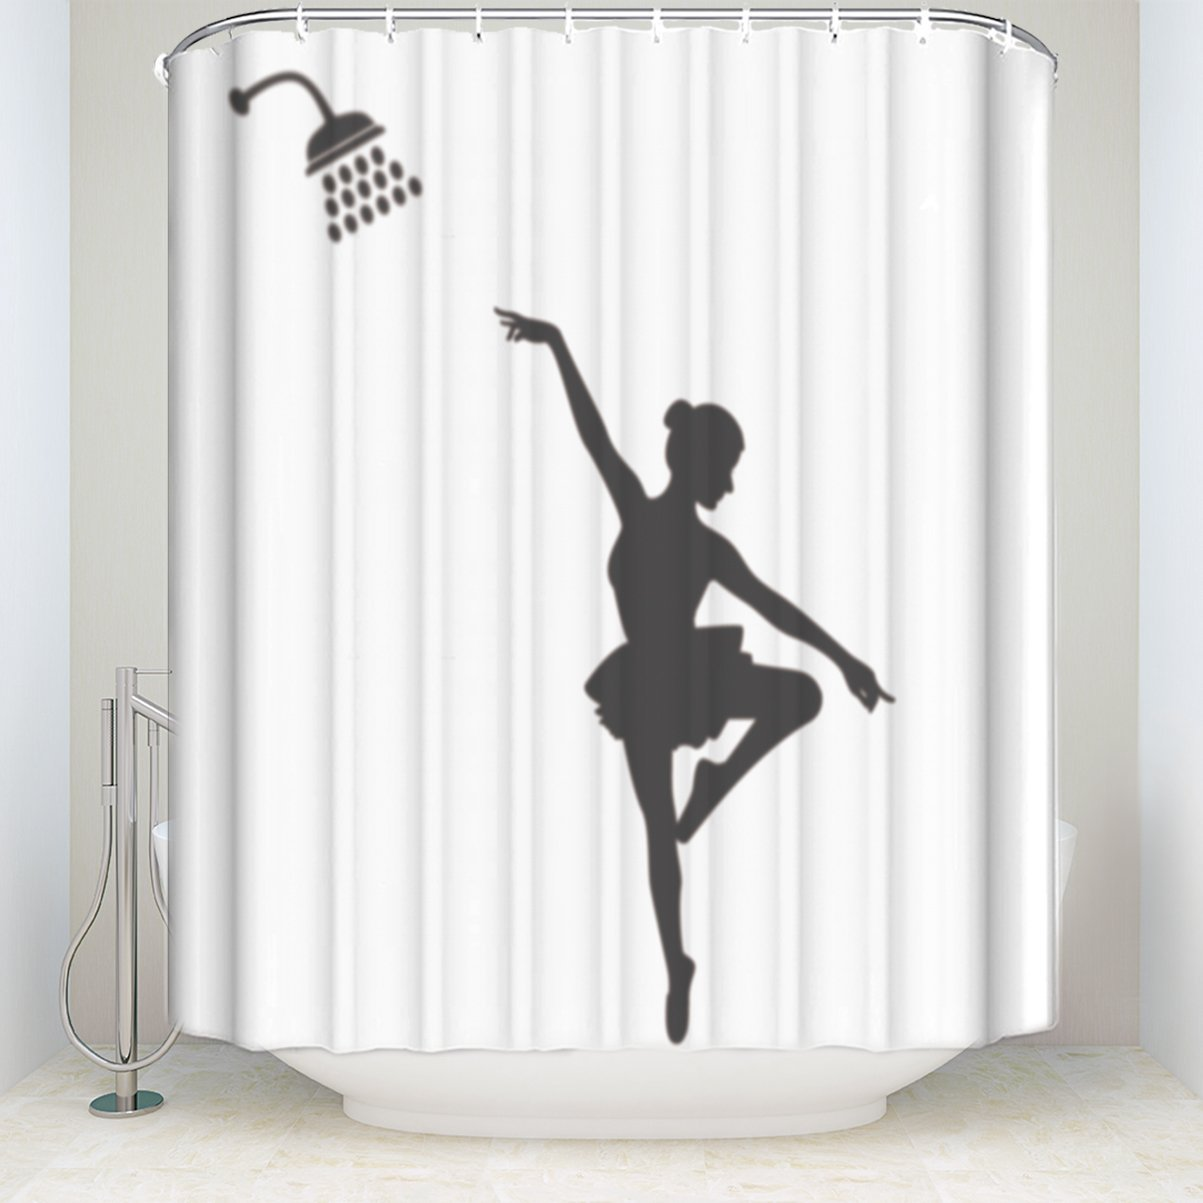 Ballet Dancer Theme Shower Curtains Insipidity Durable And 100 Waterproof By Pretty Lee In From Home Garden On Aliexpress